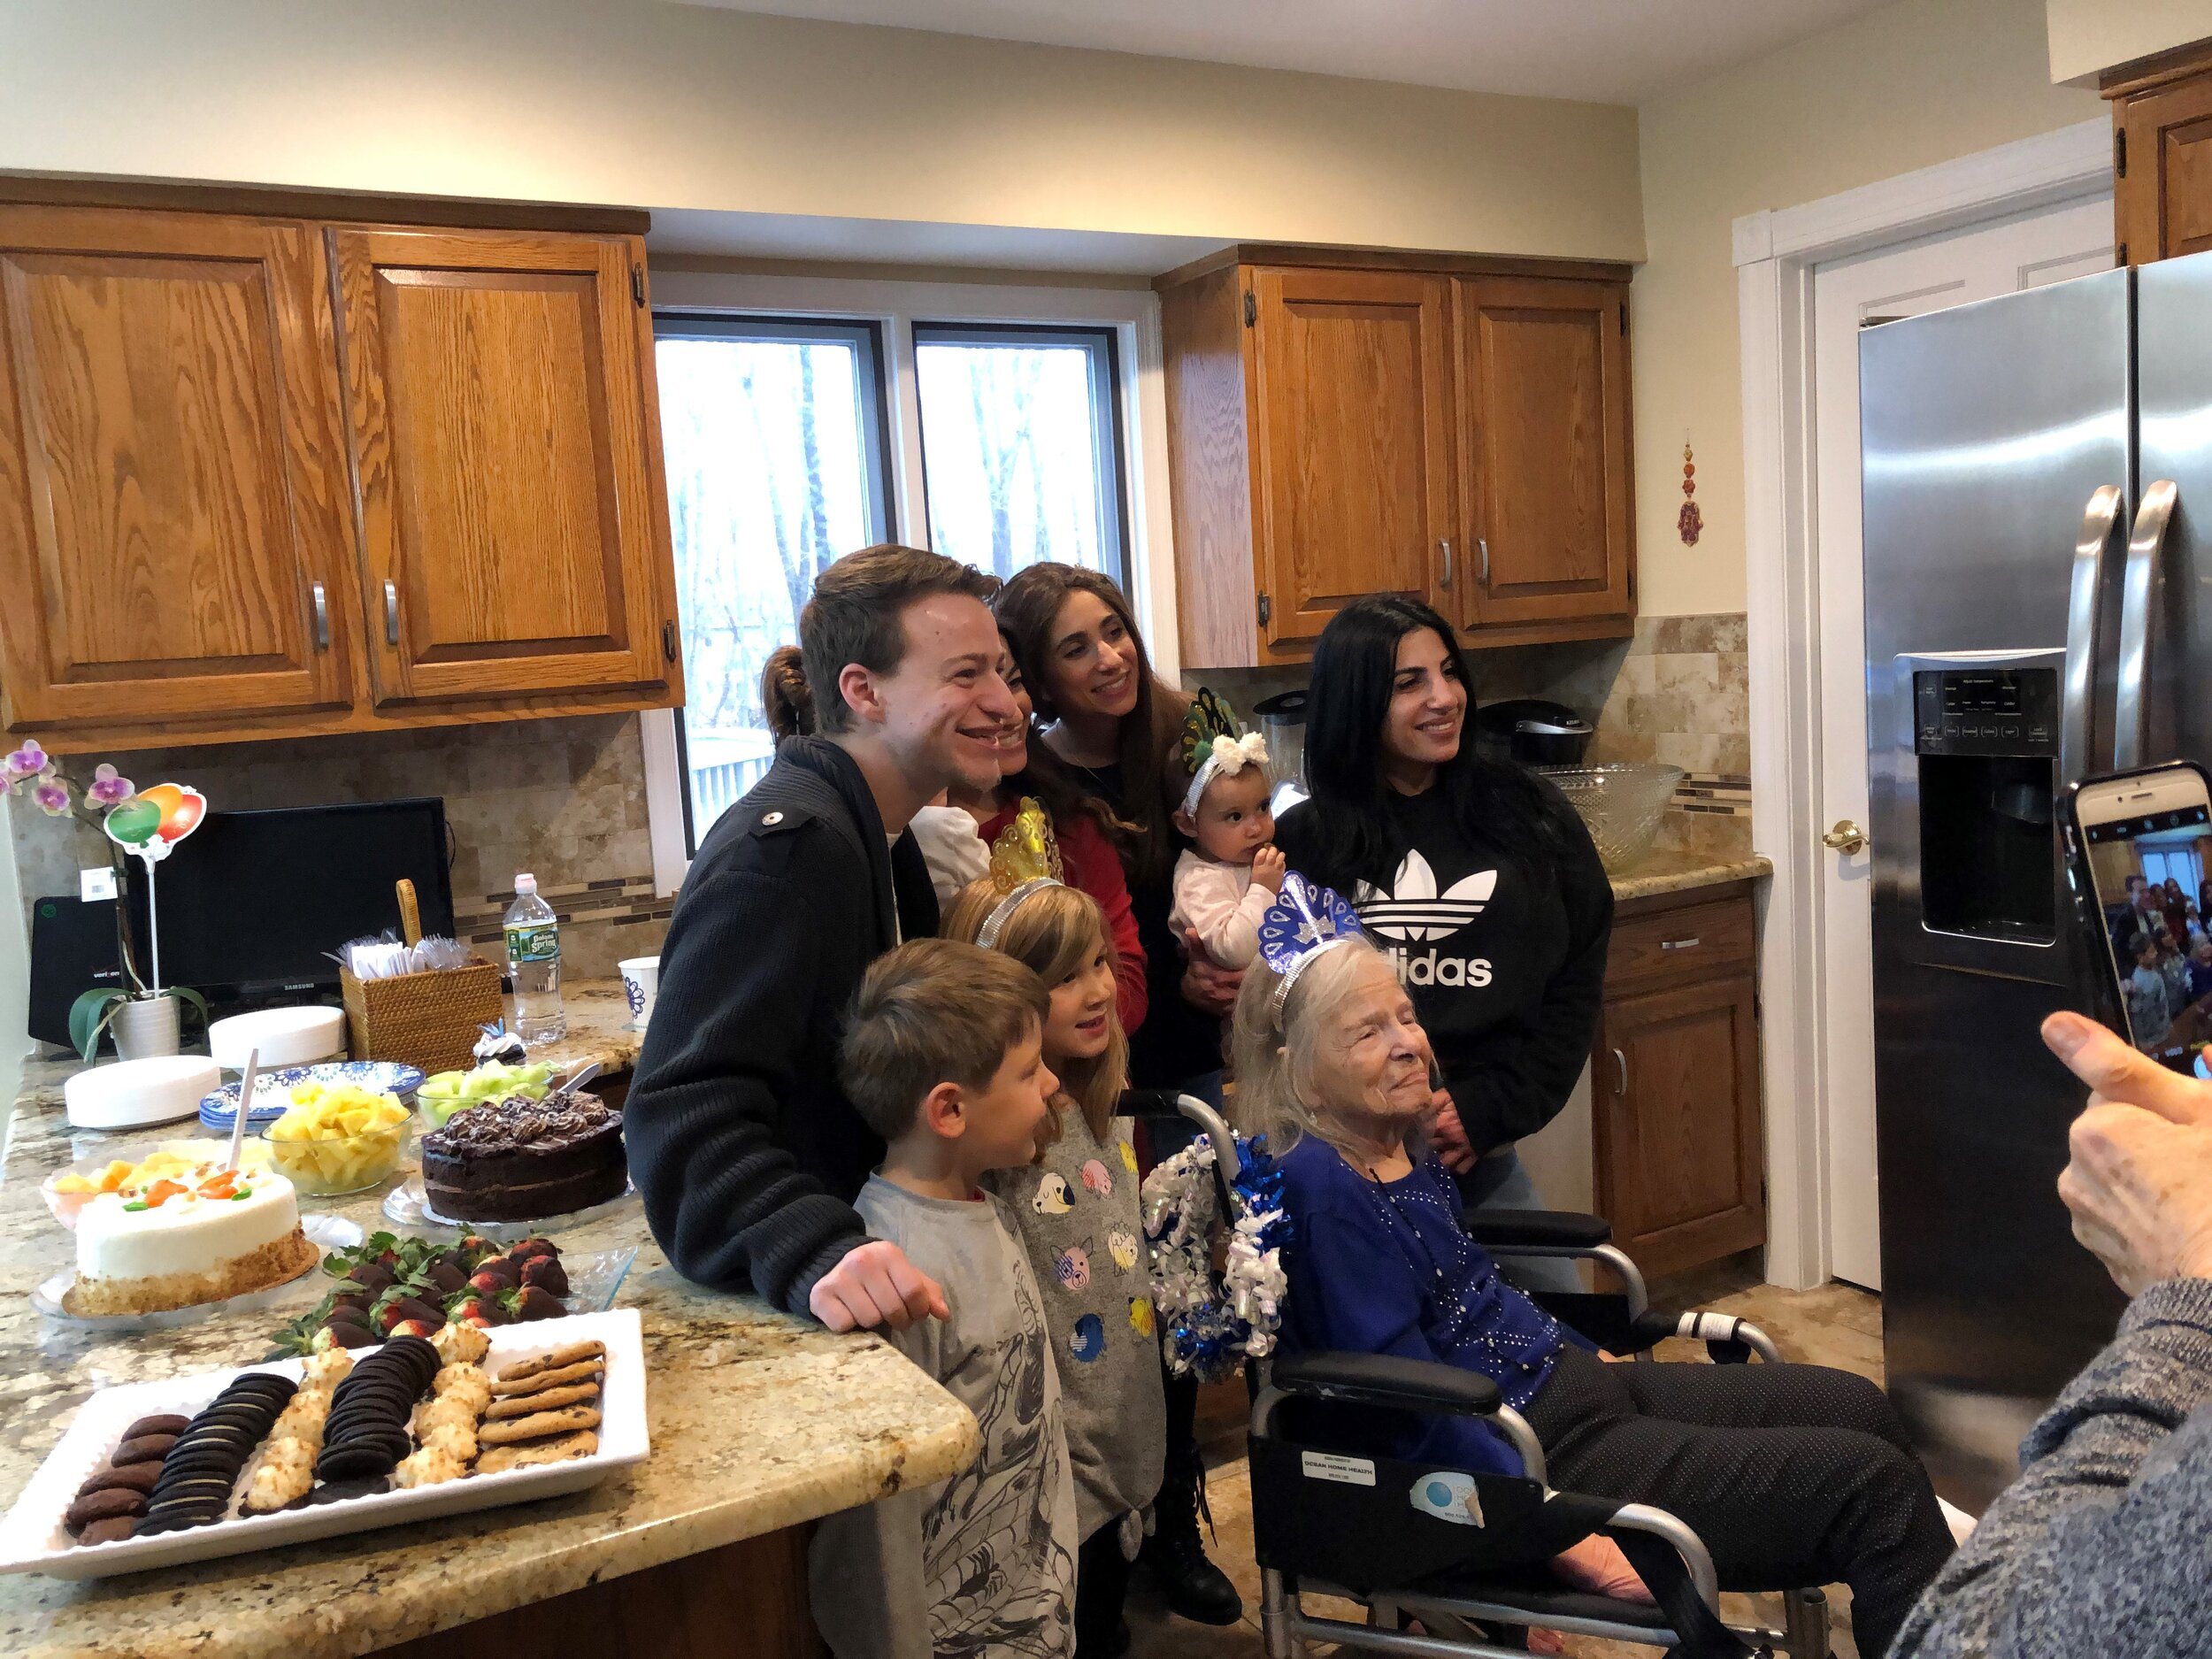 Erica Marcus…Kindertransport survivor Celebrating her 95th birthday in her New Jersey home pictured here with several but not all of her grandchildren and great-grandchildren